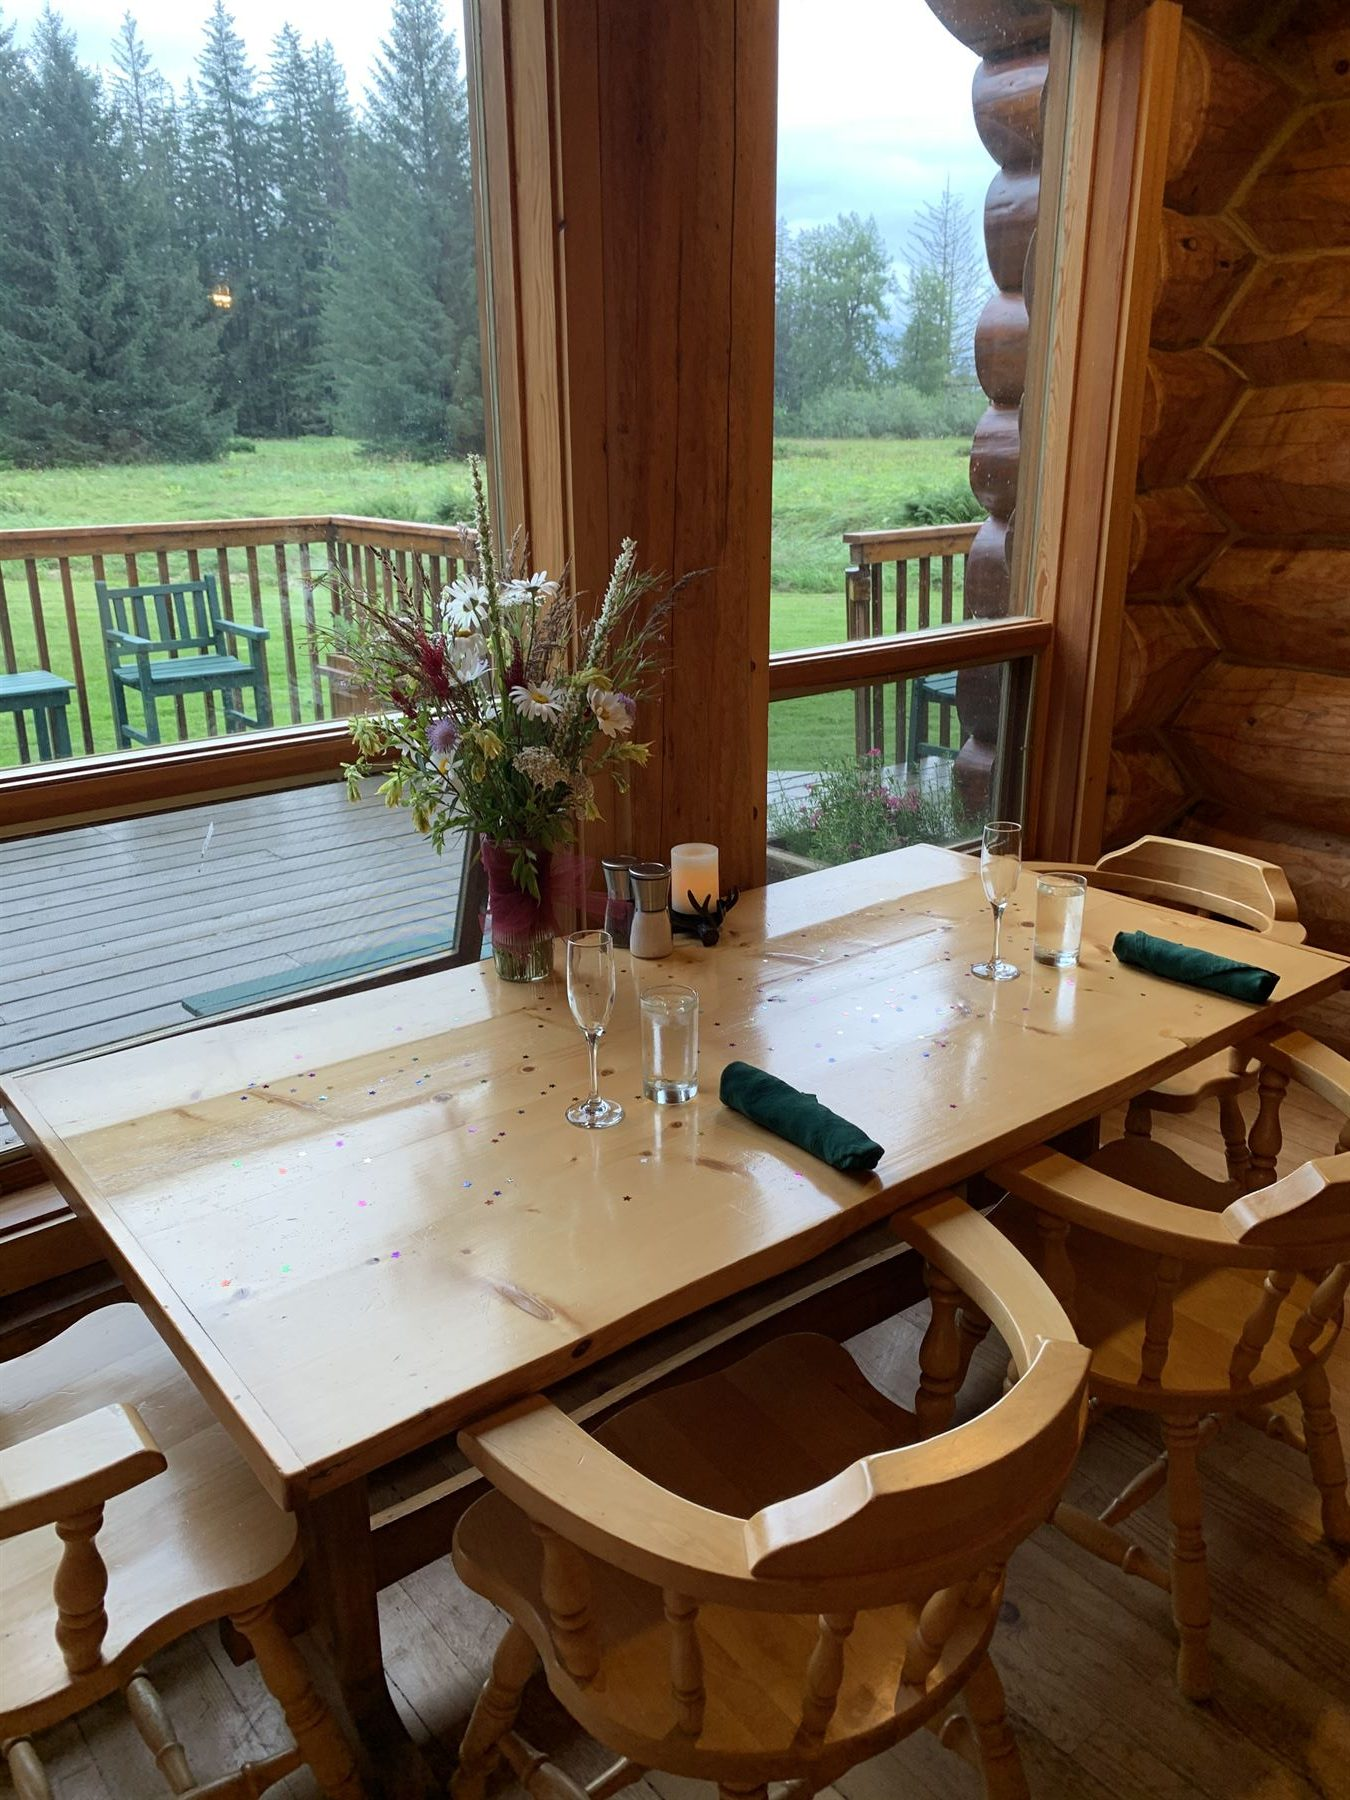 Dining table with view to deck at the Bear Track Inn